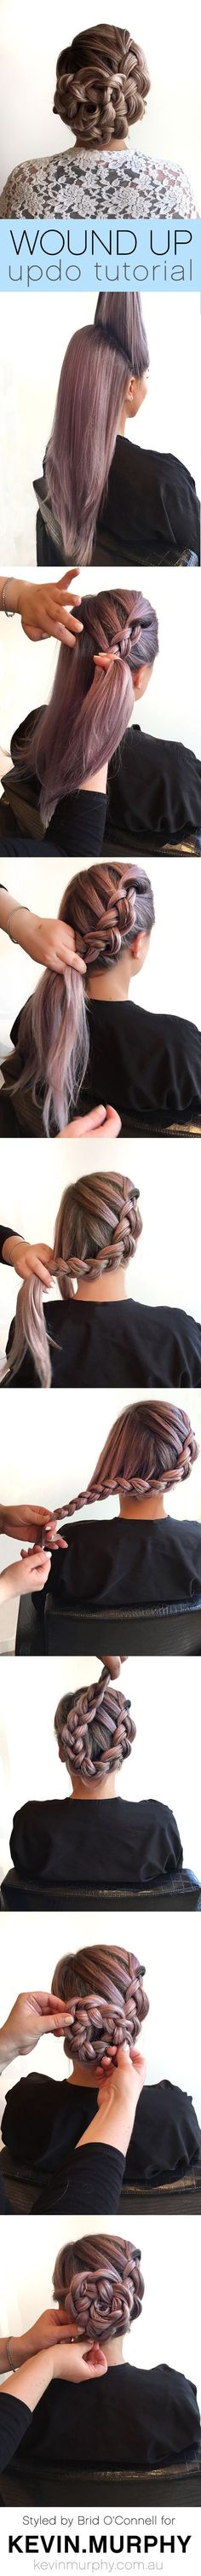 Braided Updo Braided updo using a simple dutch braid base.Braided updo using a simple dutch braid base. Unique Hairstyles, Pretty Hairstyles, Easy Hairstyles, Wedding Hairstyles, Famous Hairstyles, Night Hairstyles, Romantic Hairstyles, Wedding Updo, African Hairstyles